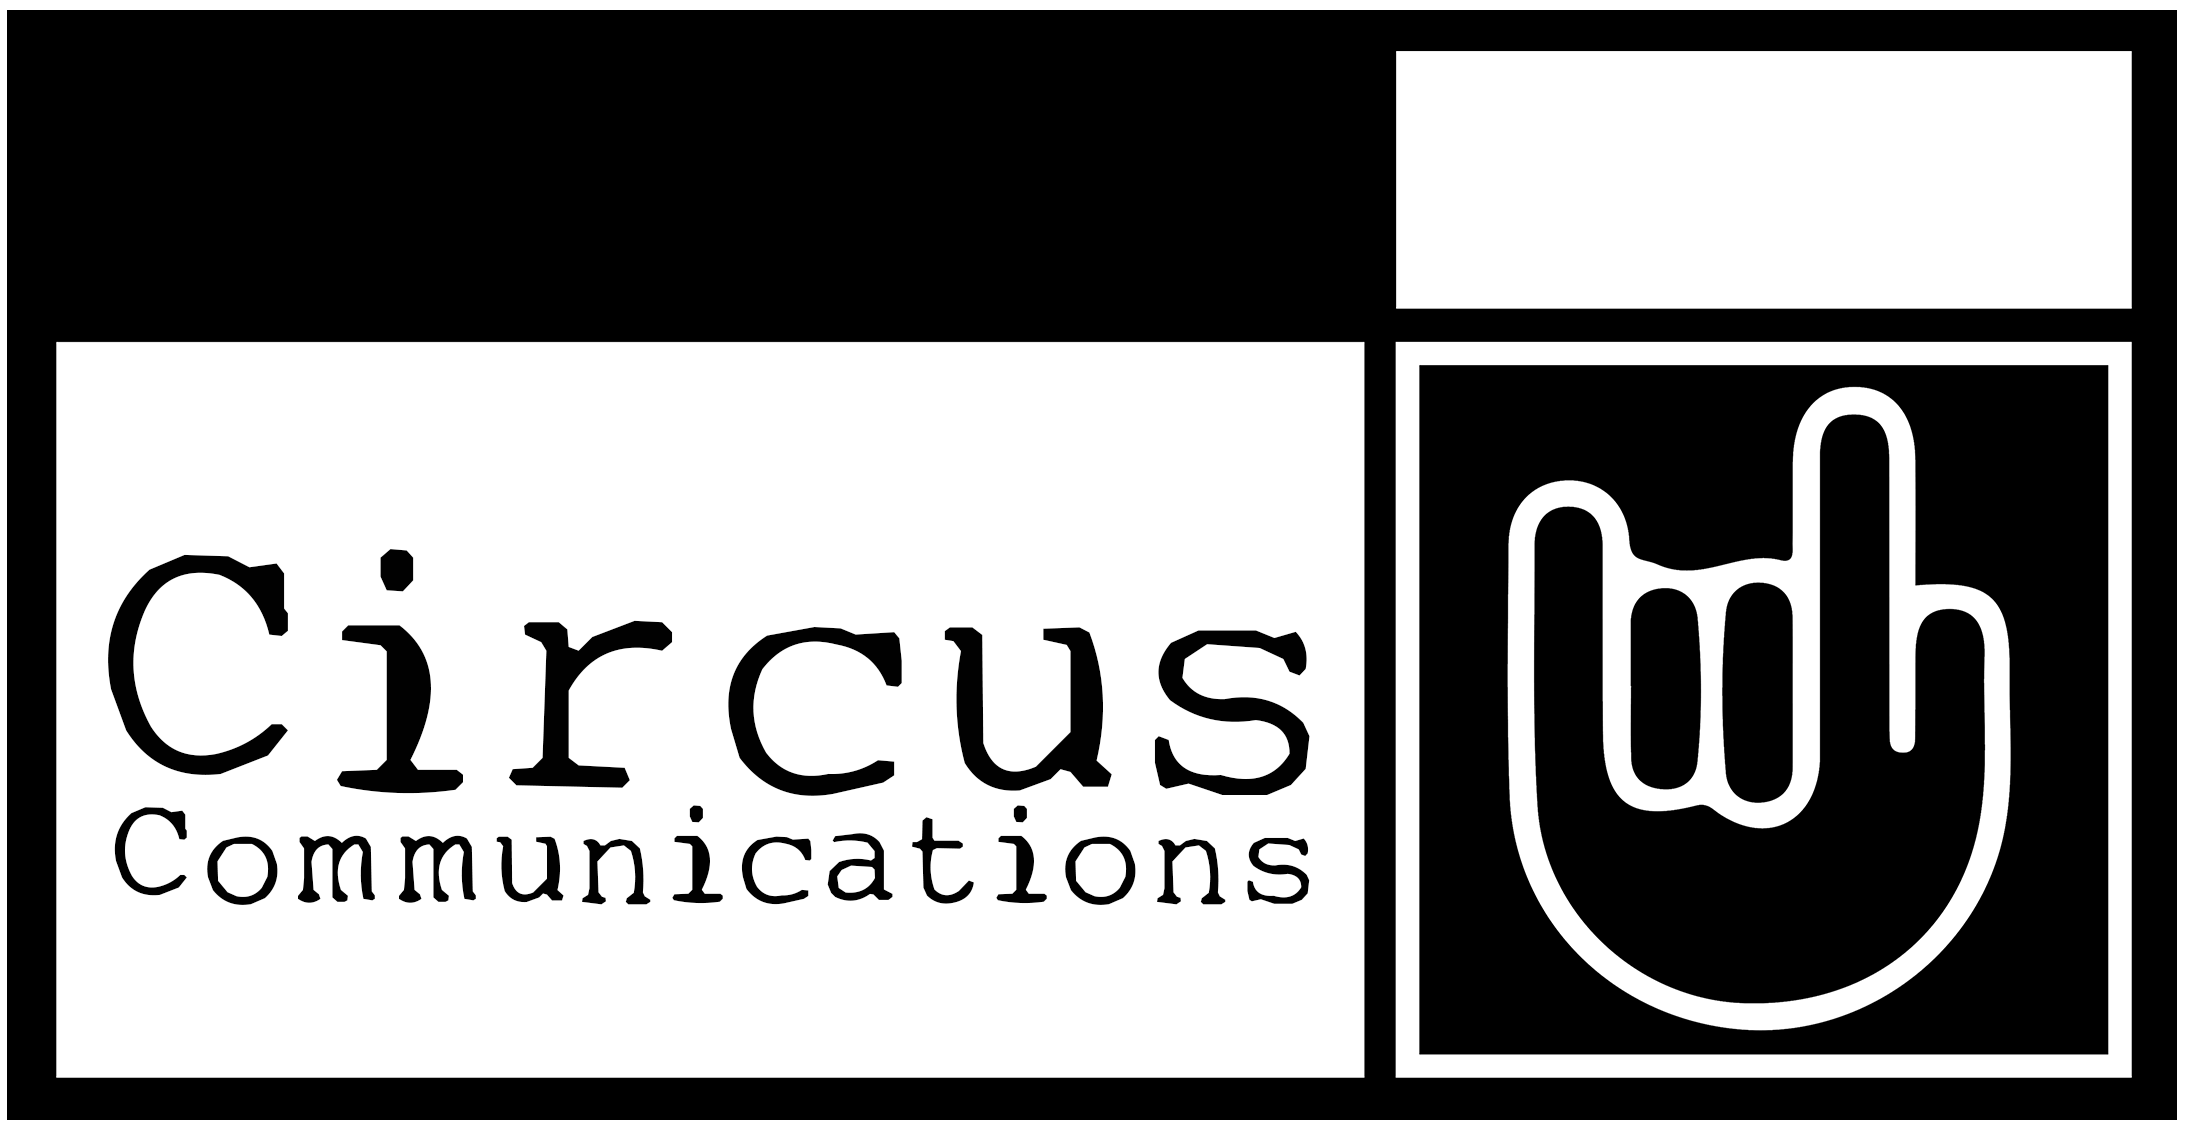 Circus Communications